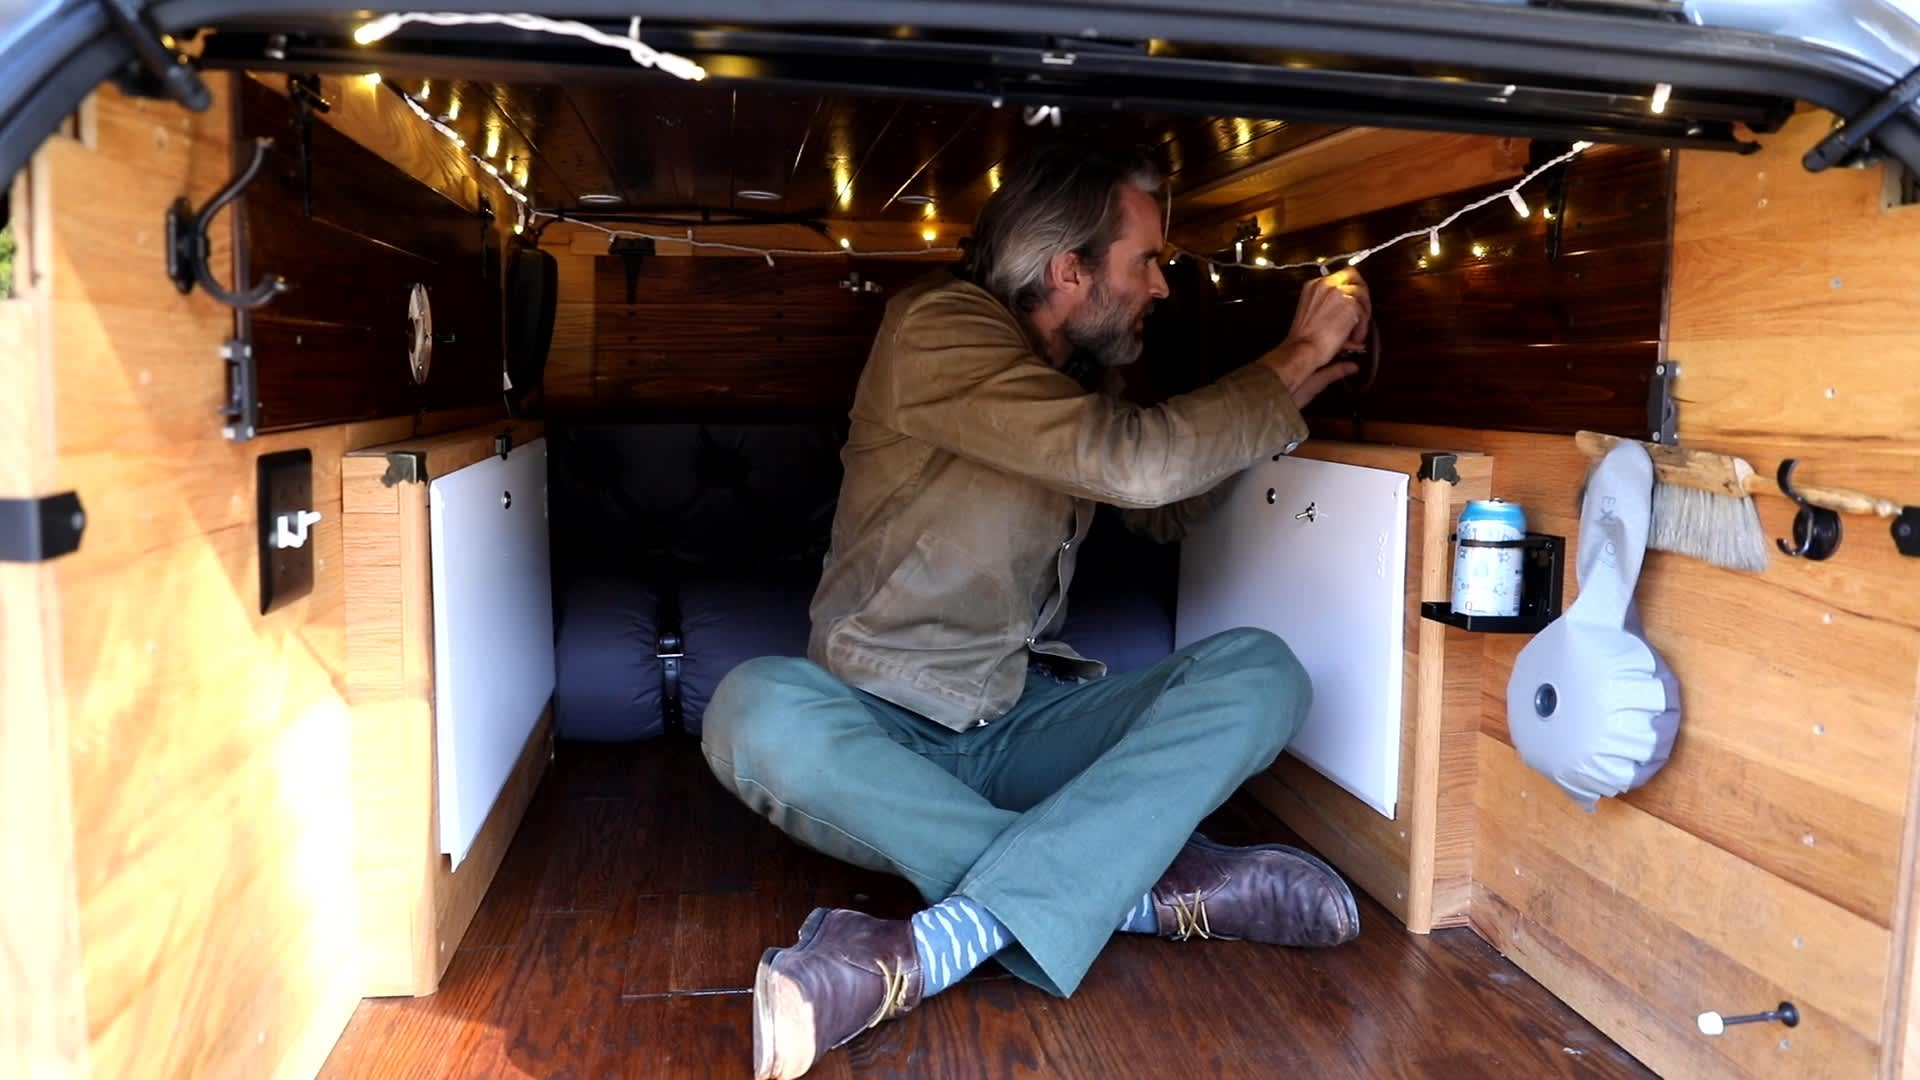 Dishongh designed and installed every part of the camper himself.